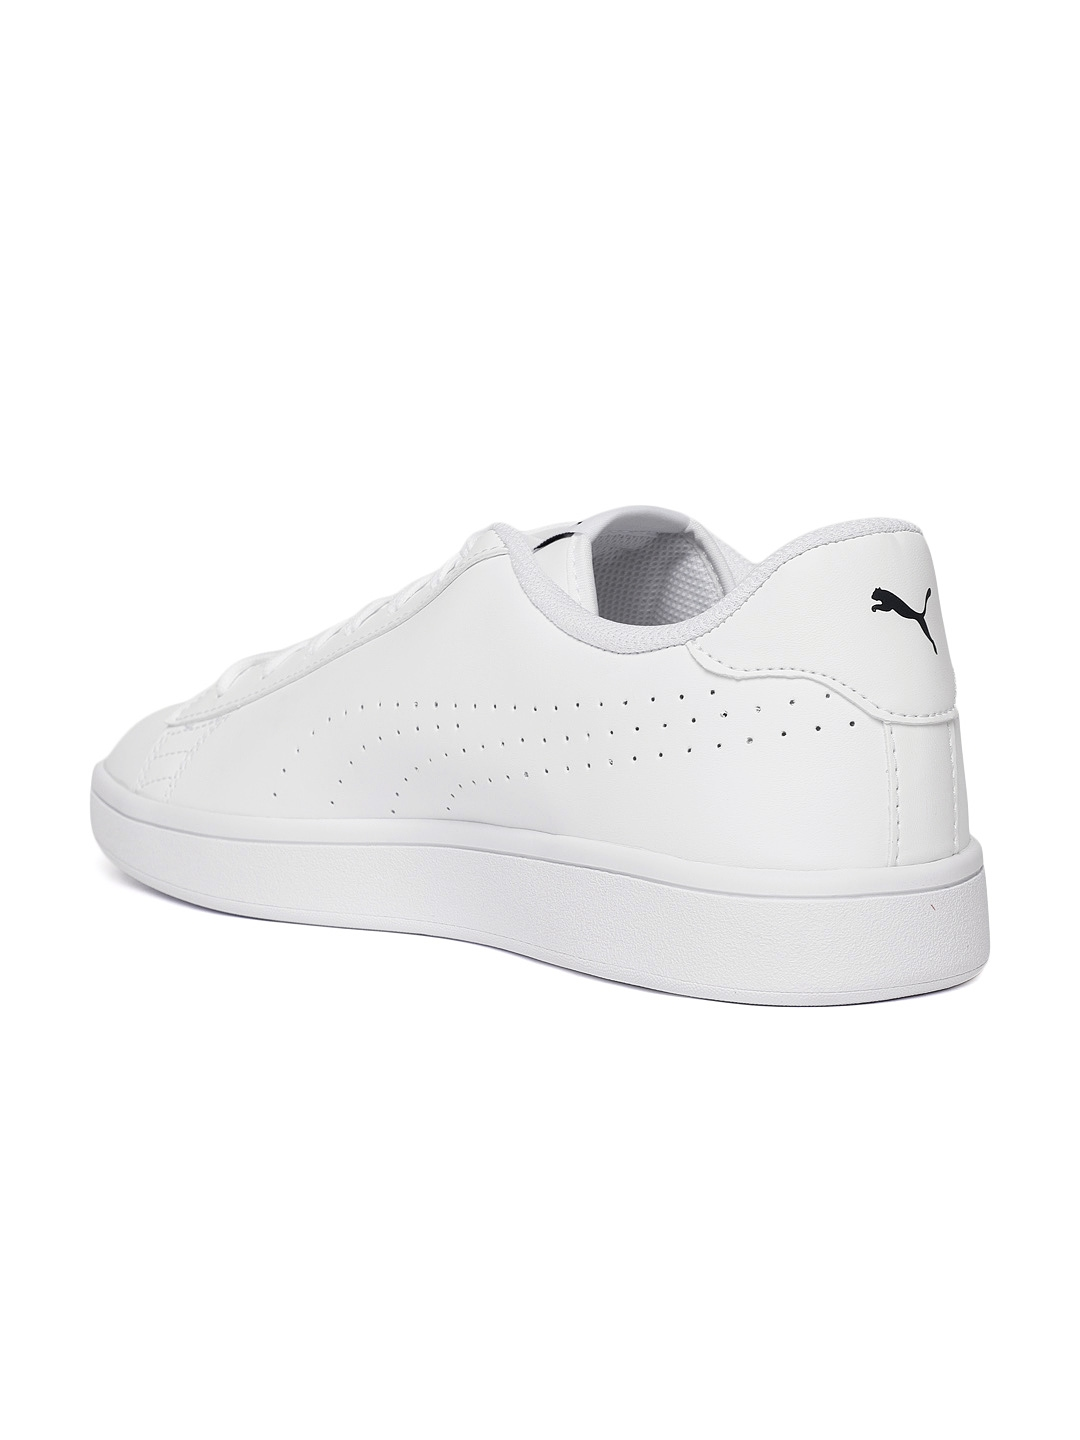 1acc3fb8a137 Buy Puma Men White Smash V2 Perforated Leather Sneakers - Casual ...